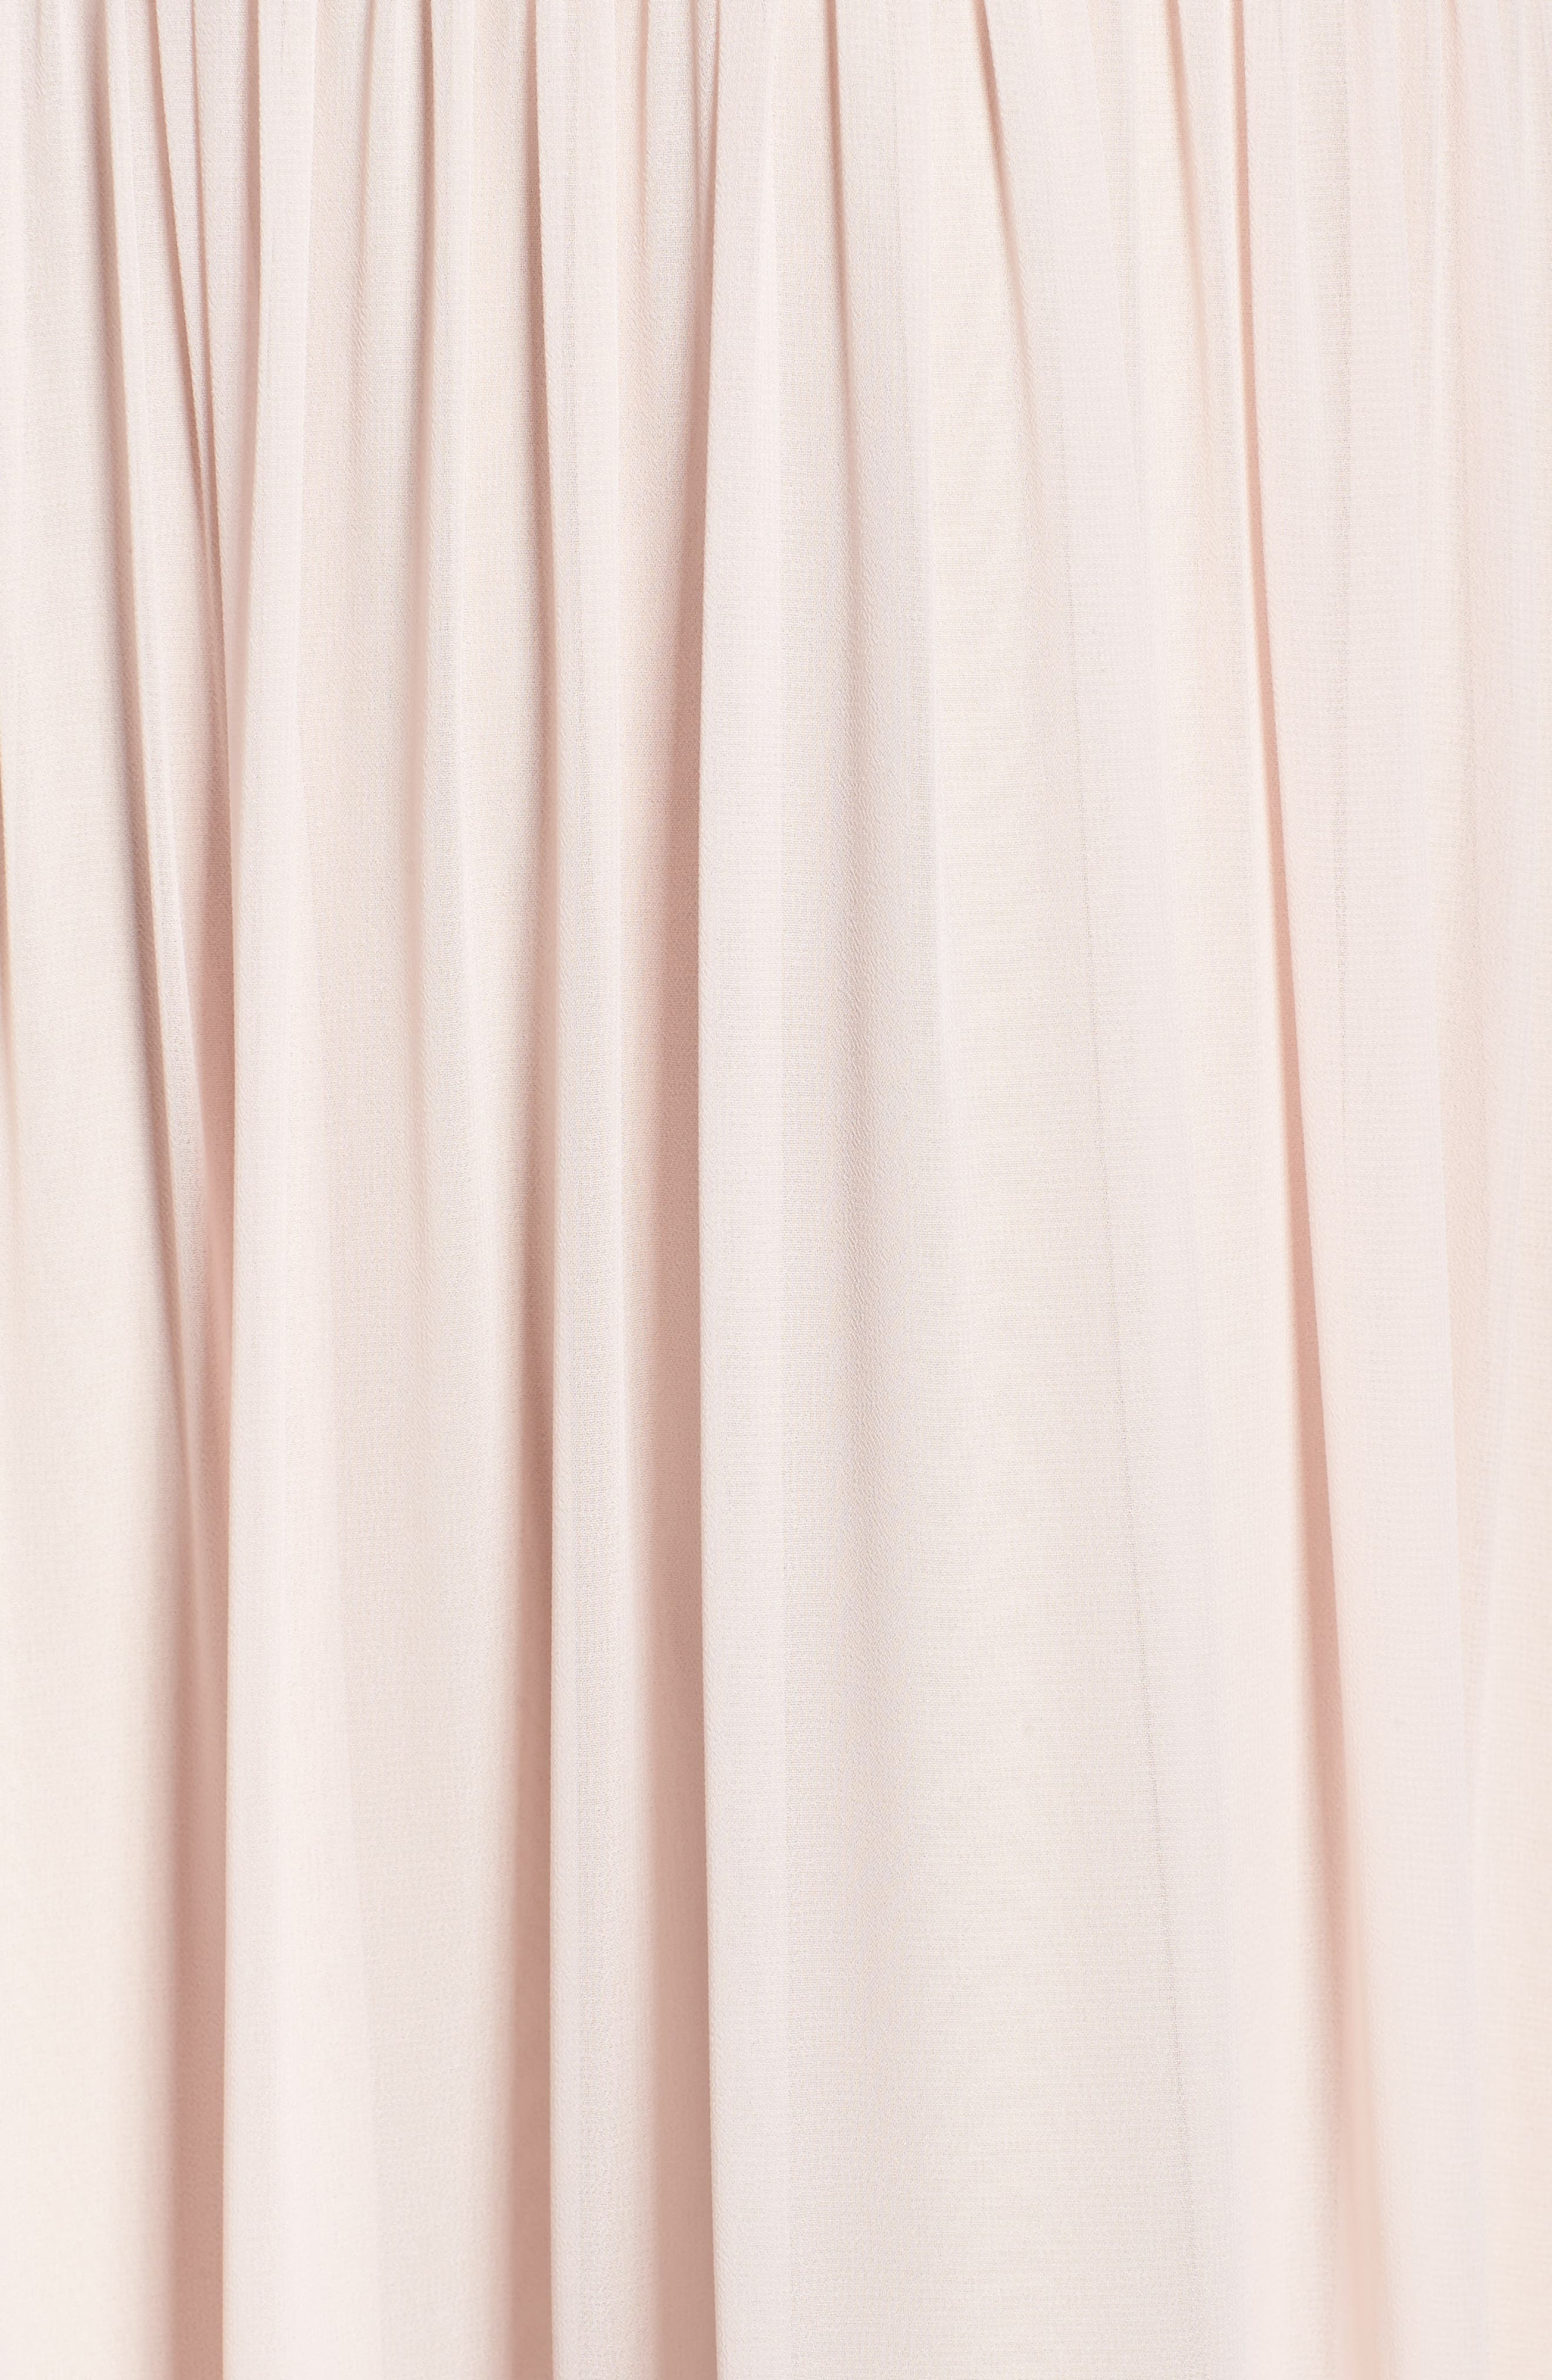 Ruffle Detail A-Line Chiffon Gown,                             Alternate thumbnail 5, color,                             DUSTY ROSE